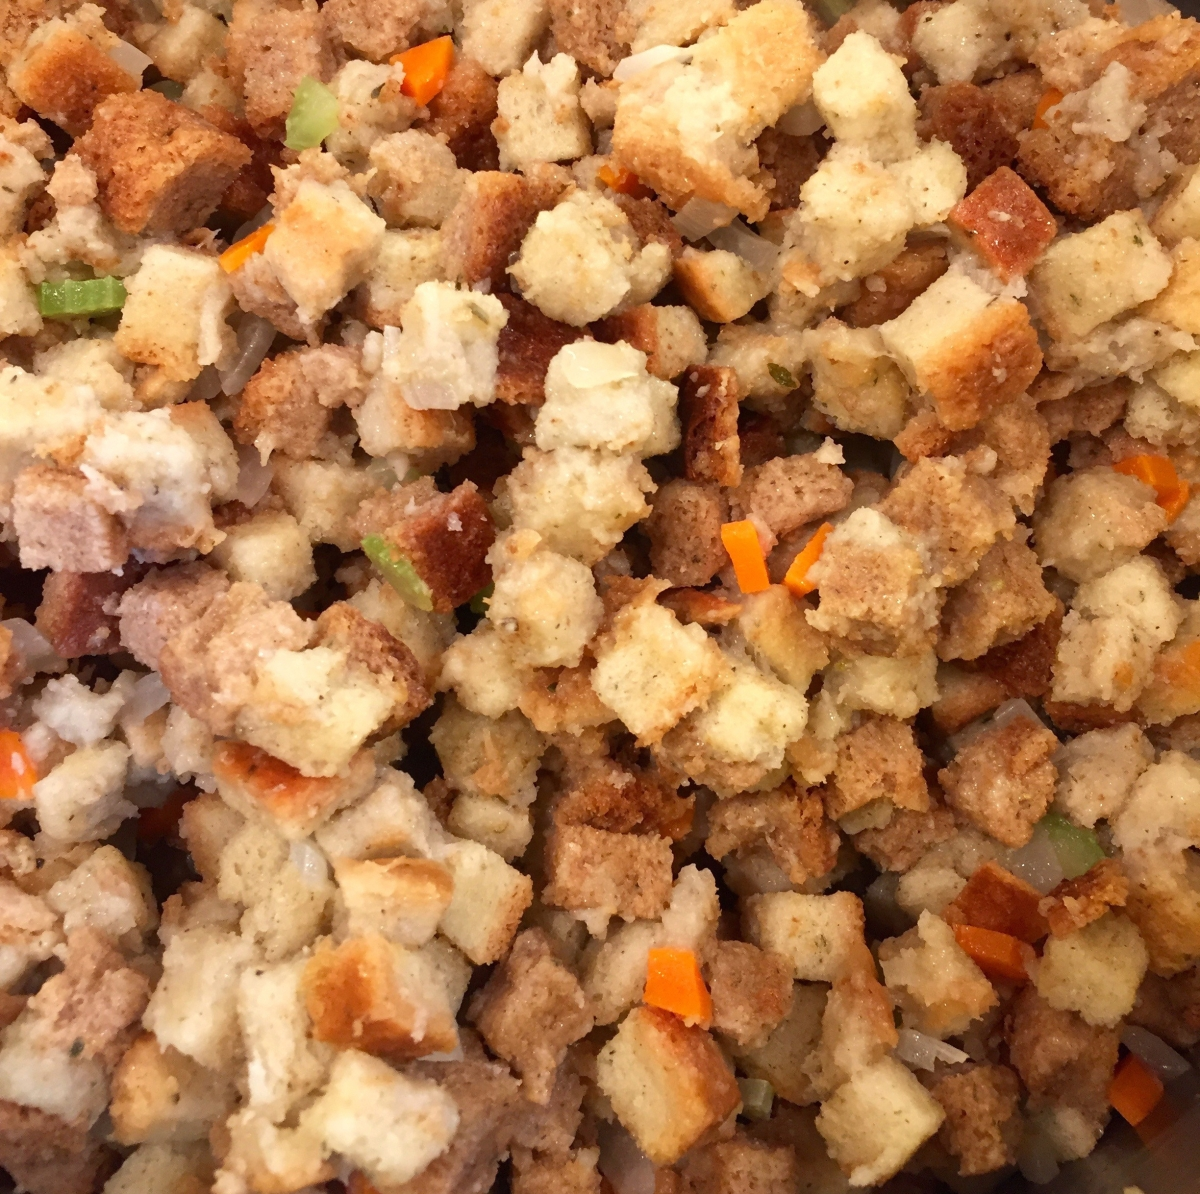 Cheaters' Stuffing